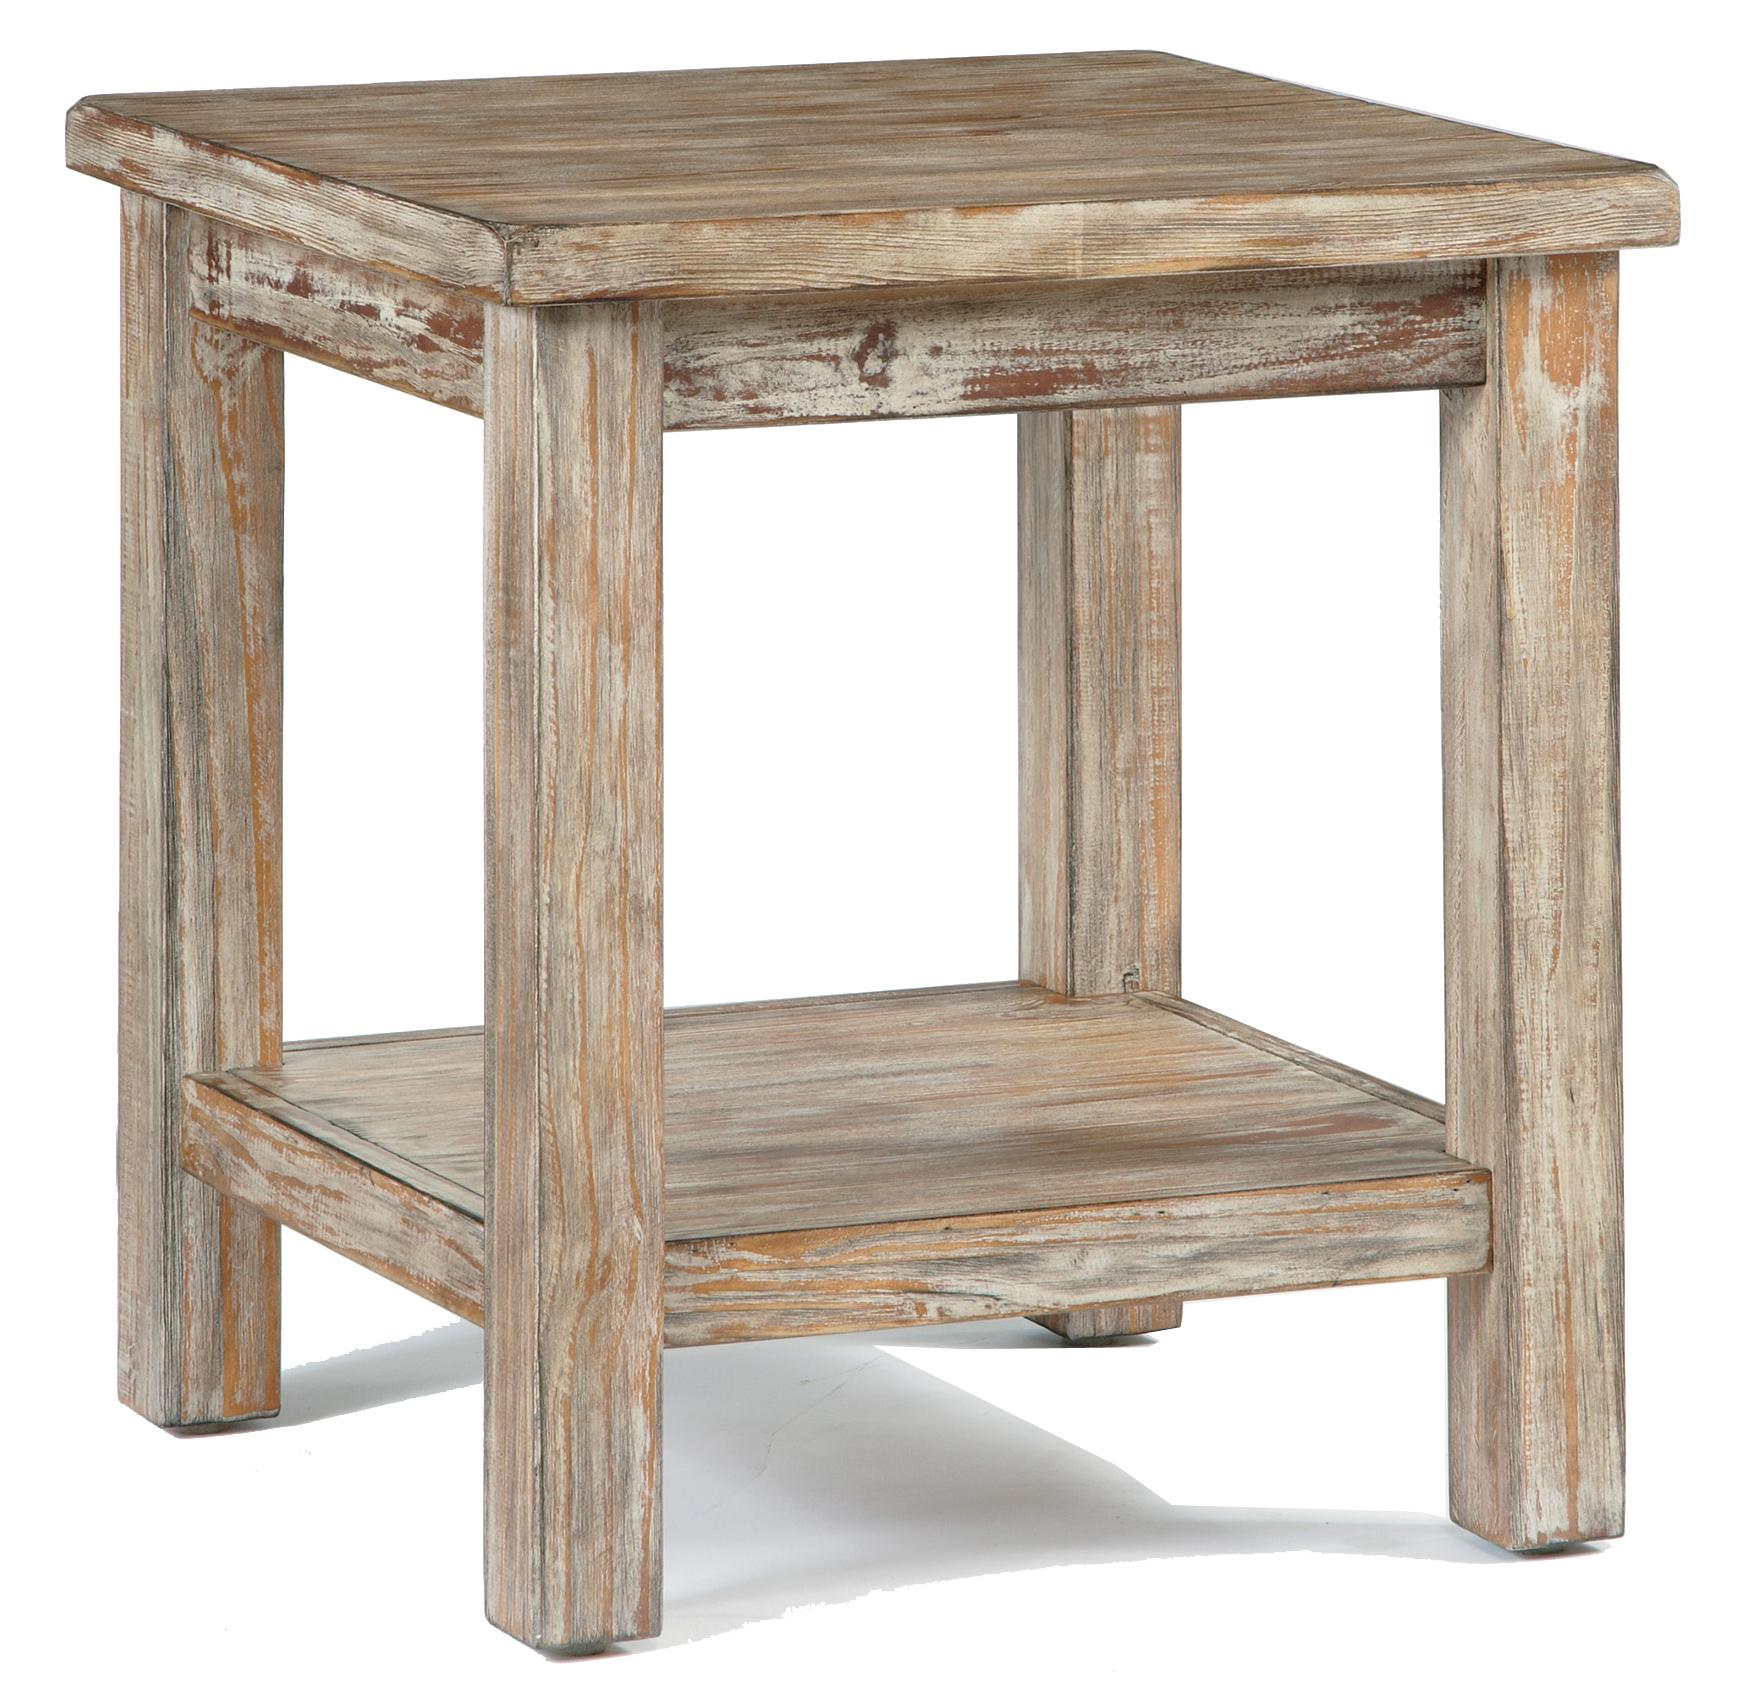 Signature Design by Ashley Vennilux Chairside End Table - Item Number: T500-302